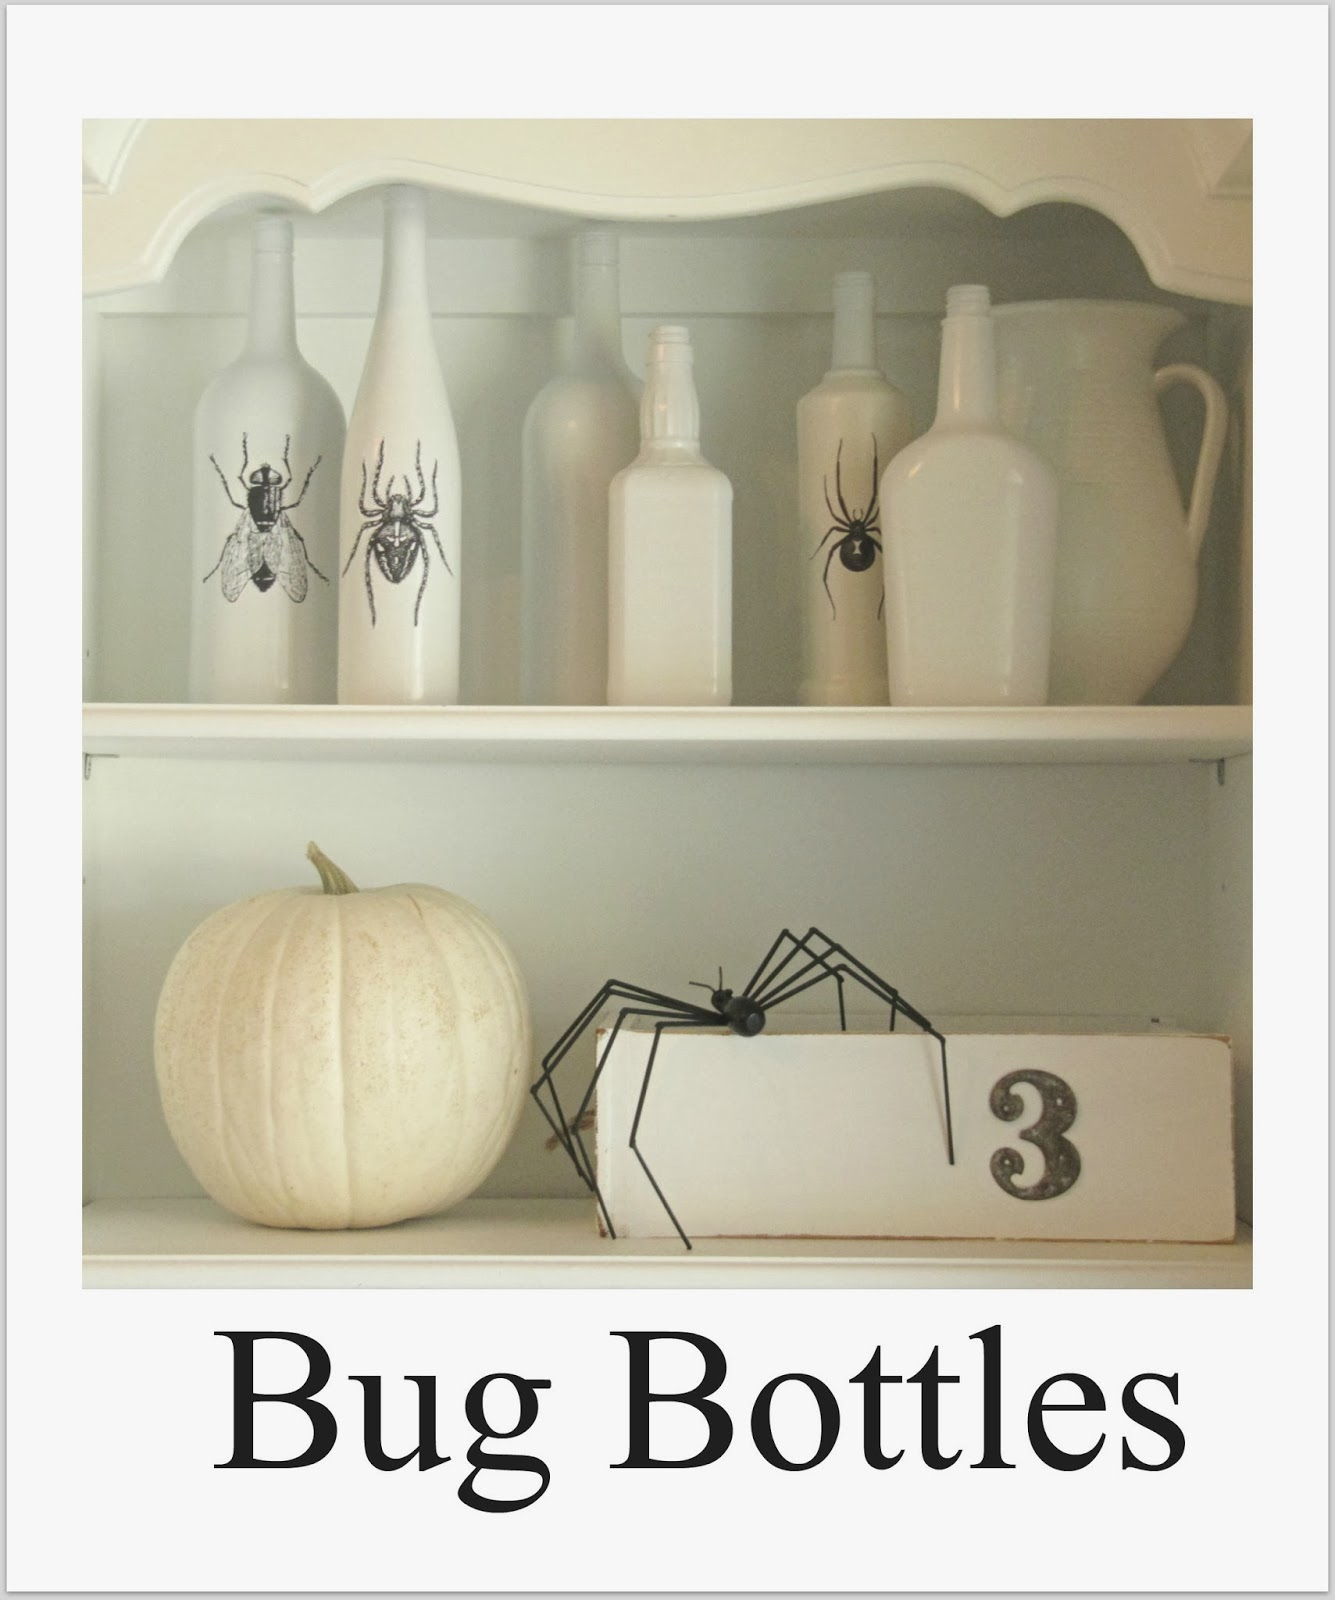 http://thewickerhouse.blogspot.com/2011/10/bug-bottles.html